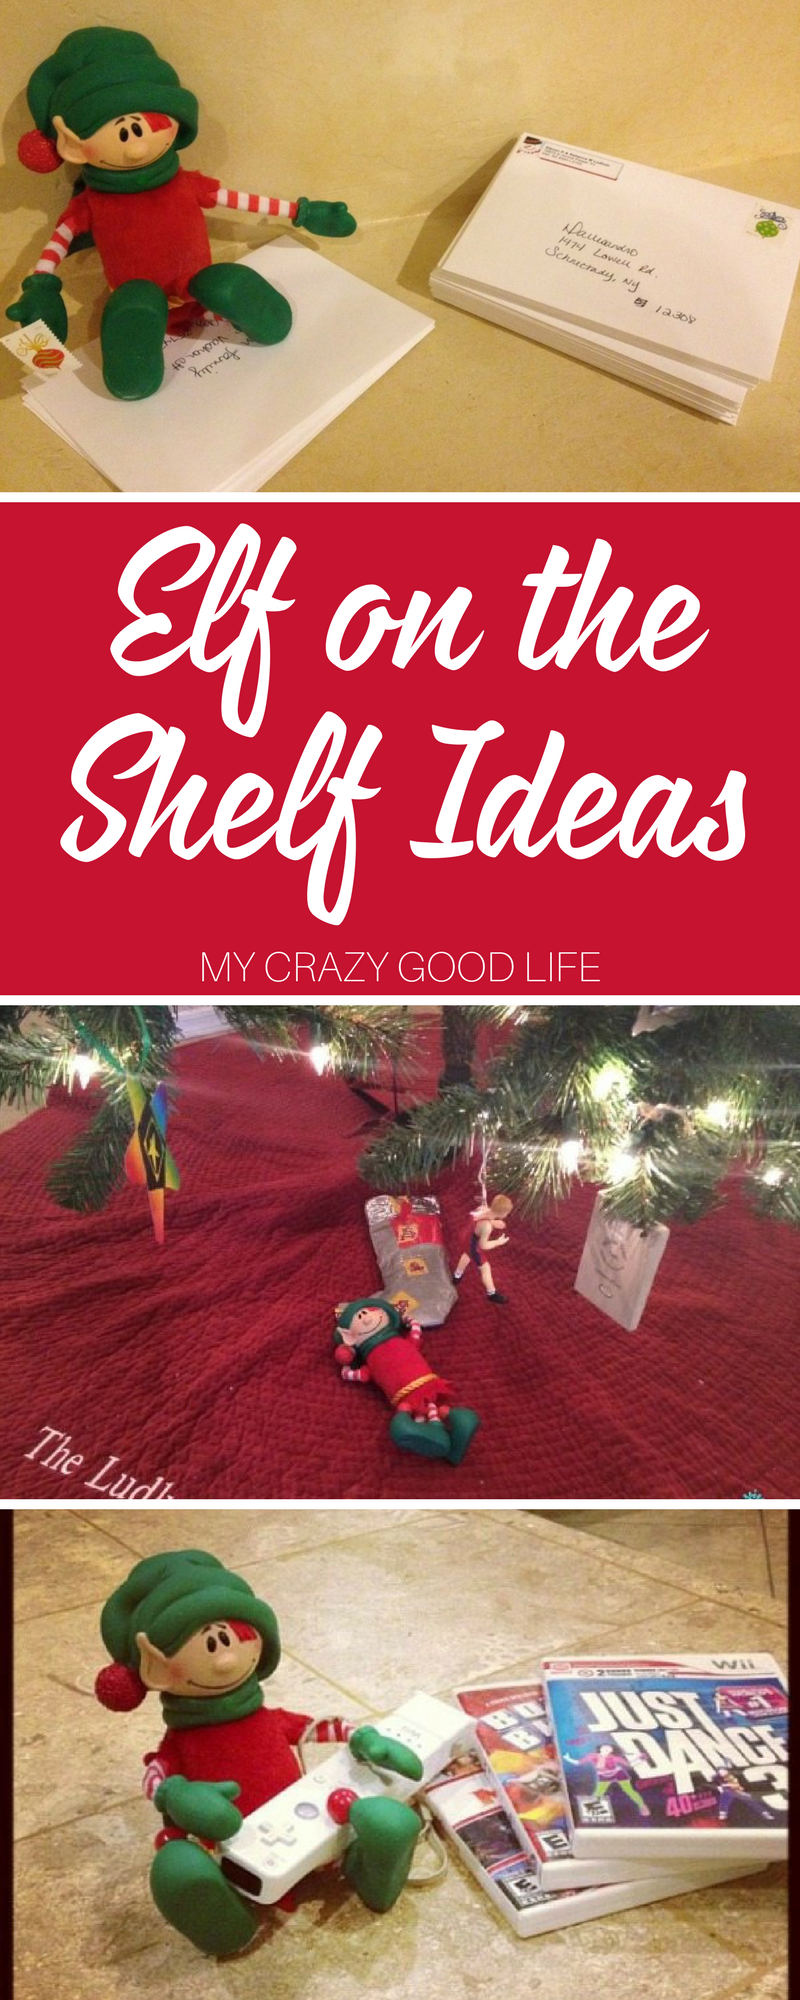 Are you in need of some Elf On The Shelf ideas? We have a few for you, and are inviting you to play along! Check out these fun Elf on the Shelf Ideas. Elf on the Shelf ideas can be tricky if you have smart kids that catch on quick, hopefully these will help!